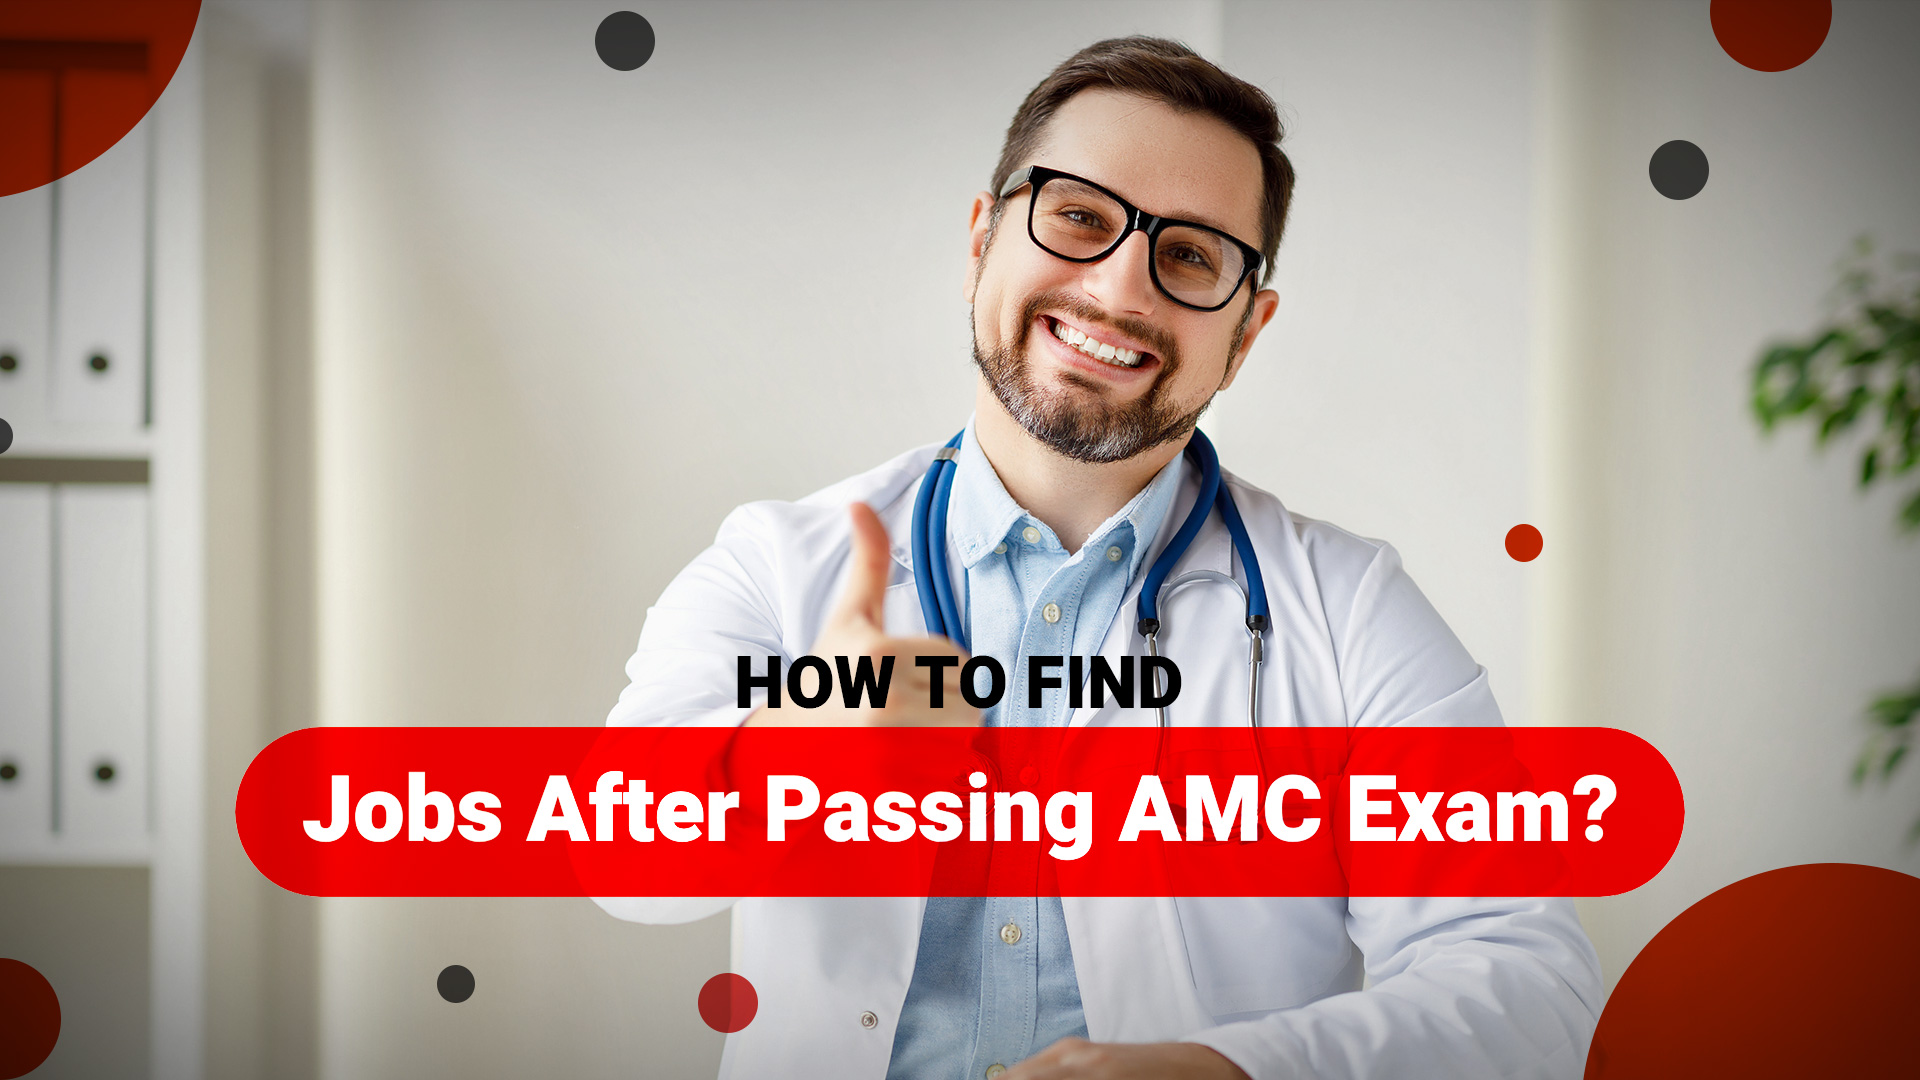 How to find jobs after passing AMC exam